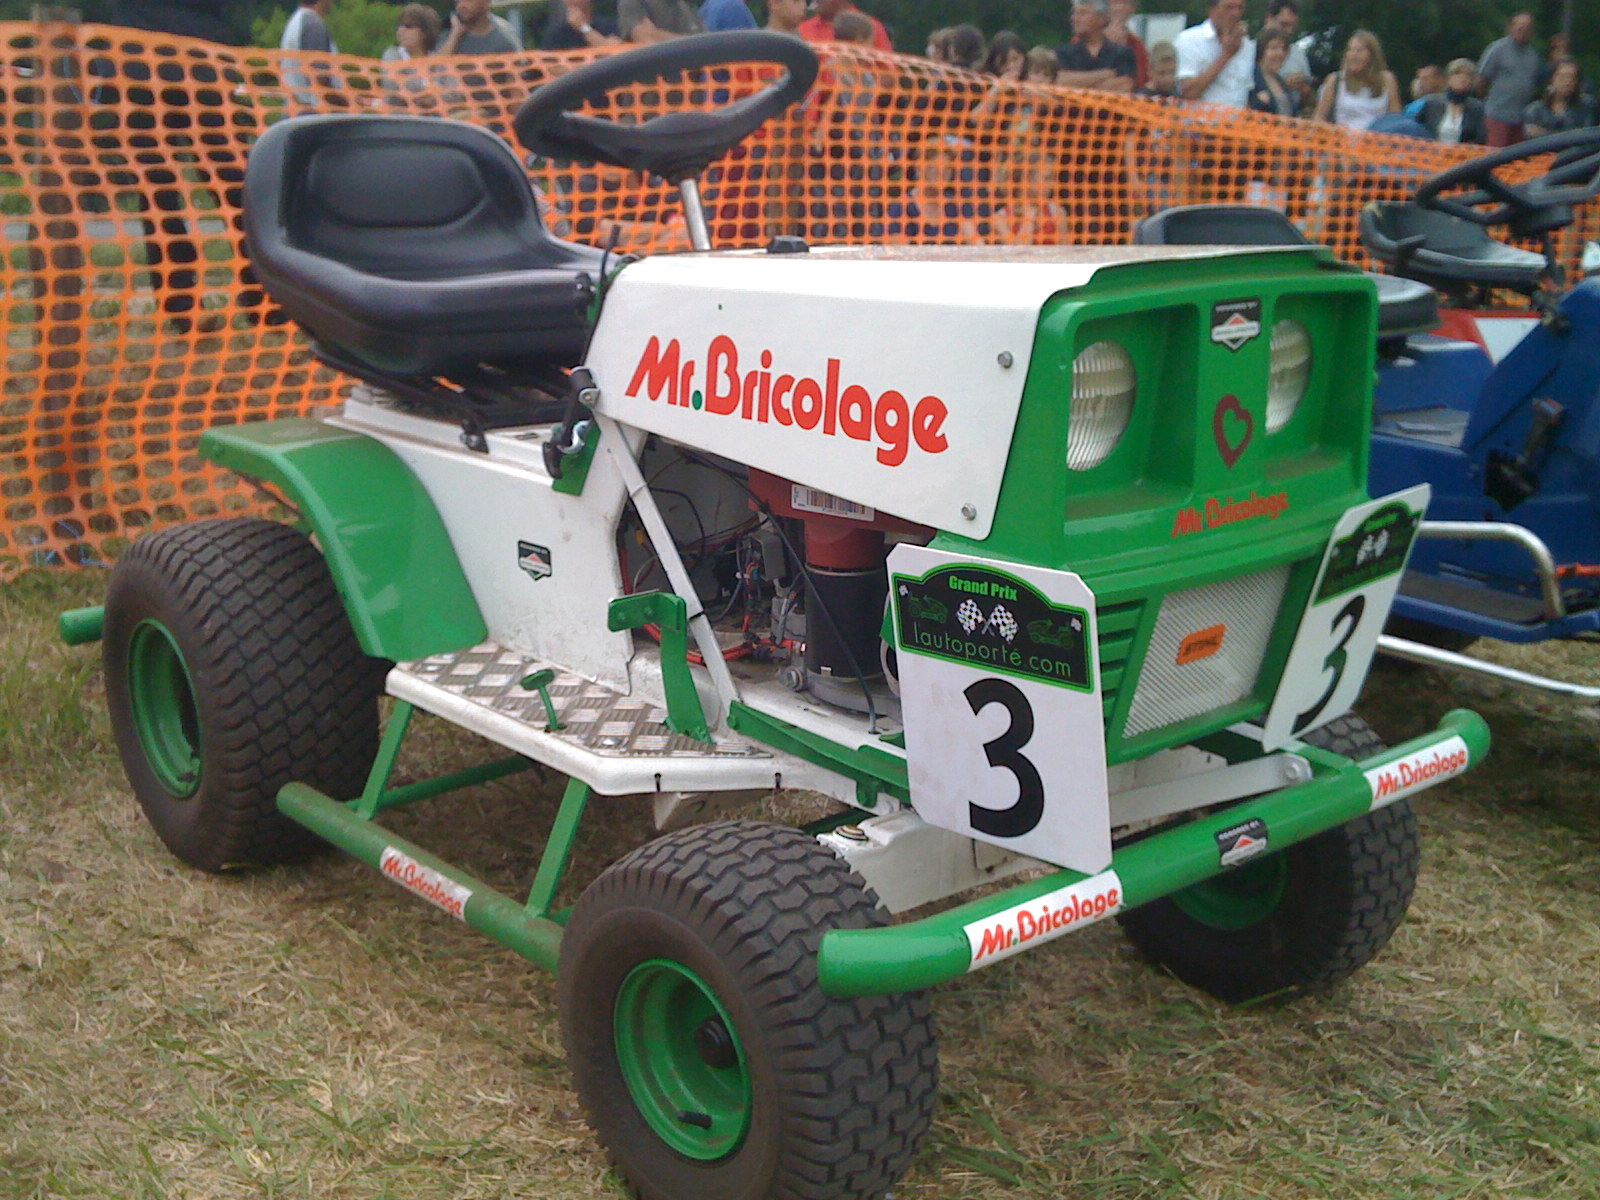 machine GP lautoporte.com